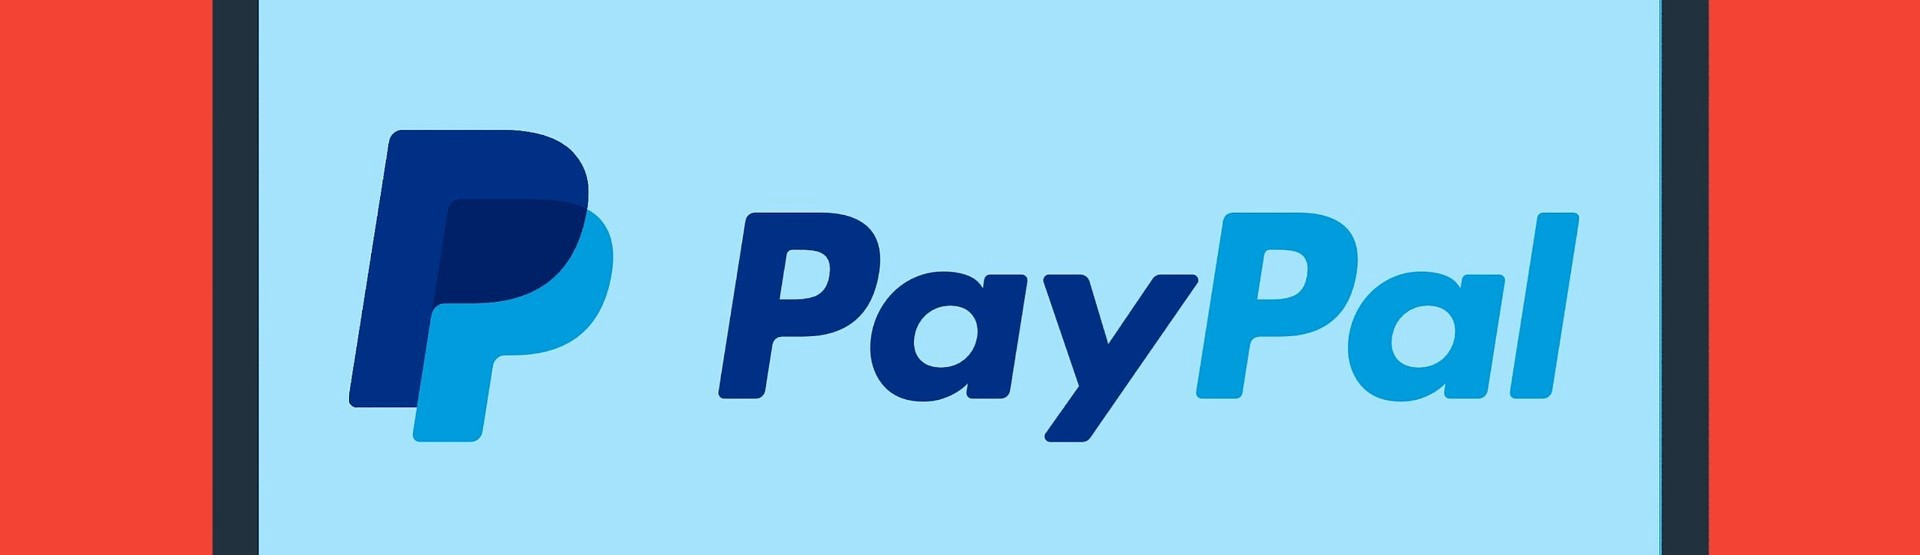 PayPal Express Checkout with React/Next js - Faruk Çakı - Medium